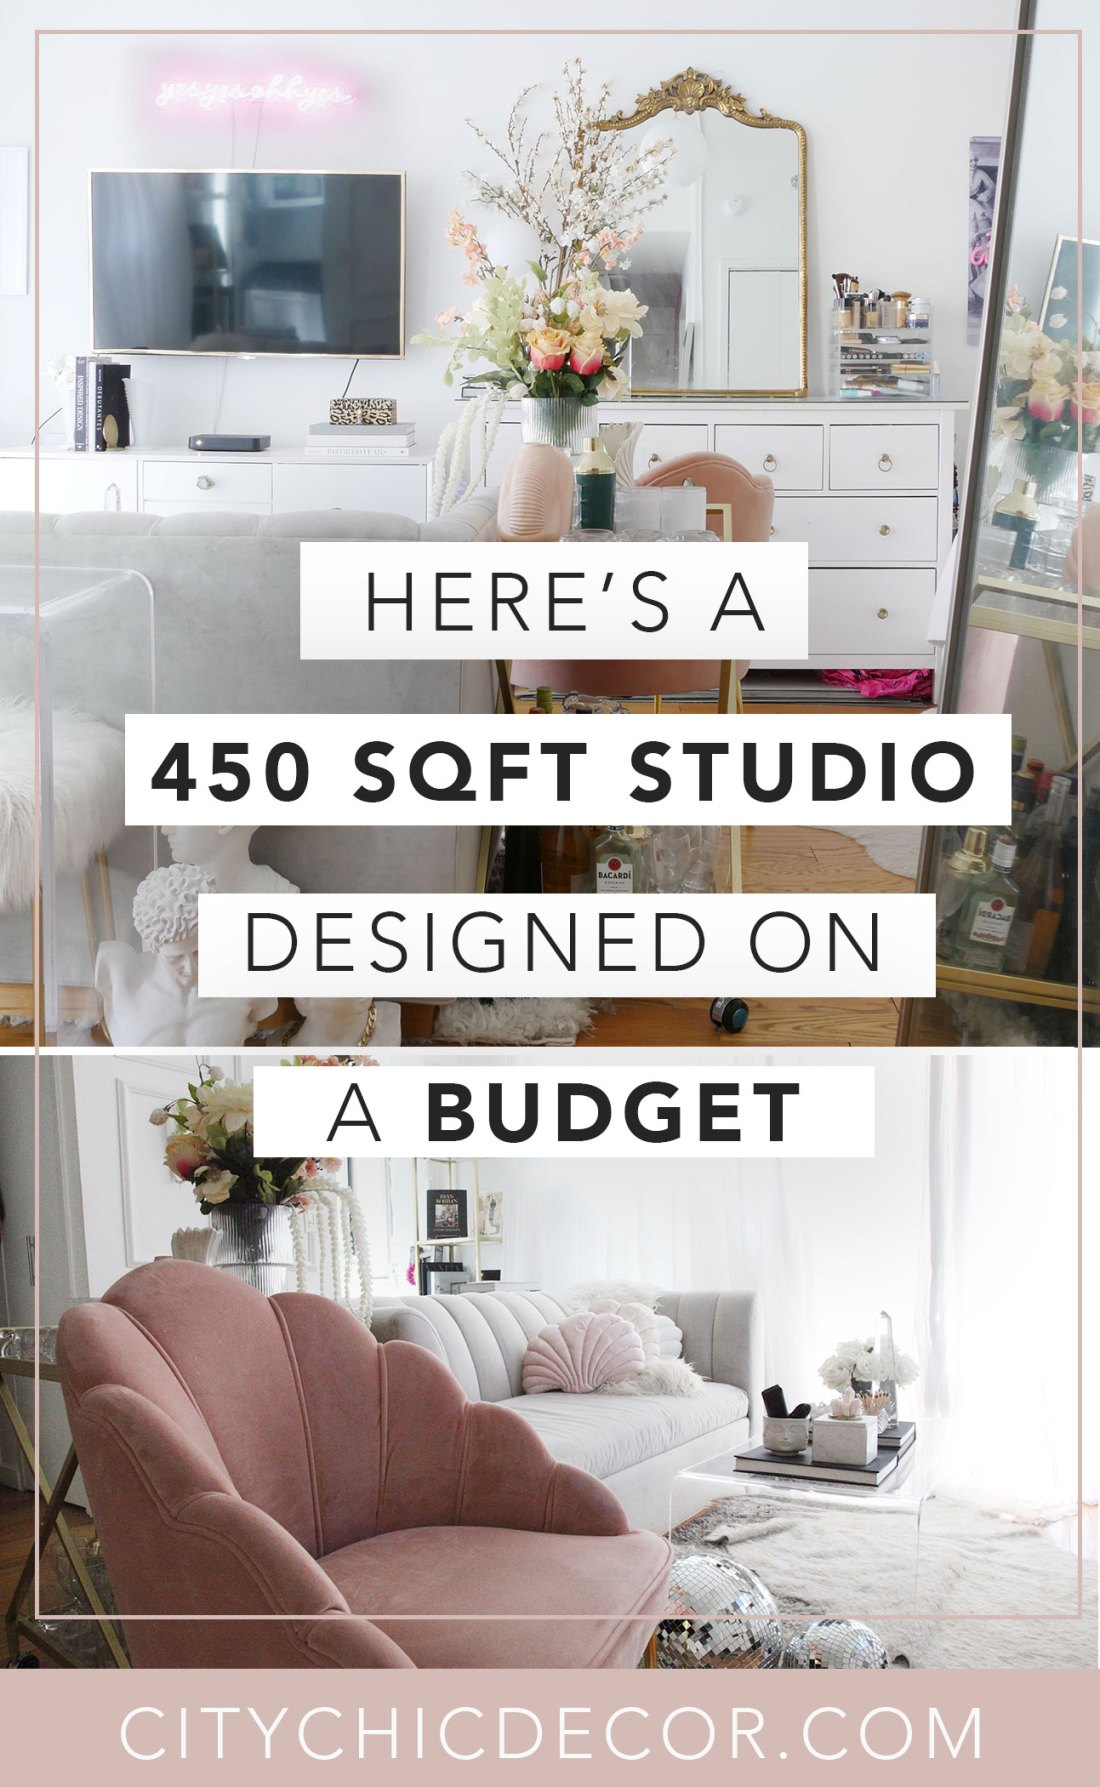 Live in a small apartment or studio and don't know how to decorate it? Or on a tight budget and feel like you don't have the money to spend on new furniture? Well, you can finally erase those fears! Learn how to decorate turn a small space into a chic home WHILE staying on a budget! #studioapartmentideas #tinystudioapartmentideas #studioapartmentdecorating #decoratingonabudget #smallapartmentideas